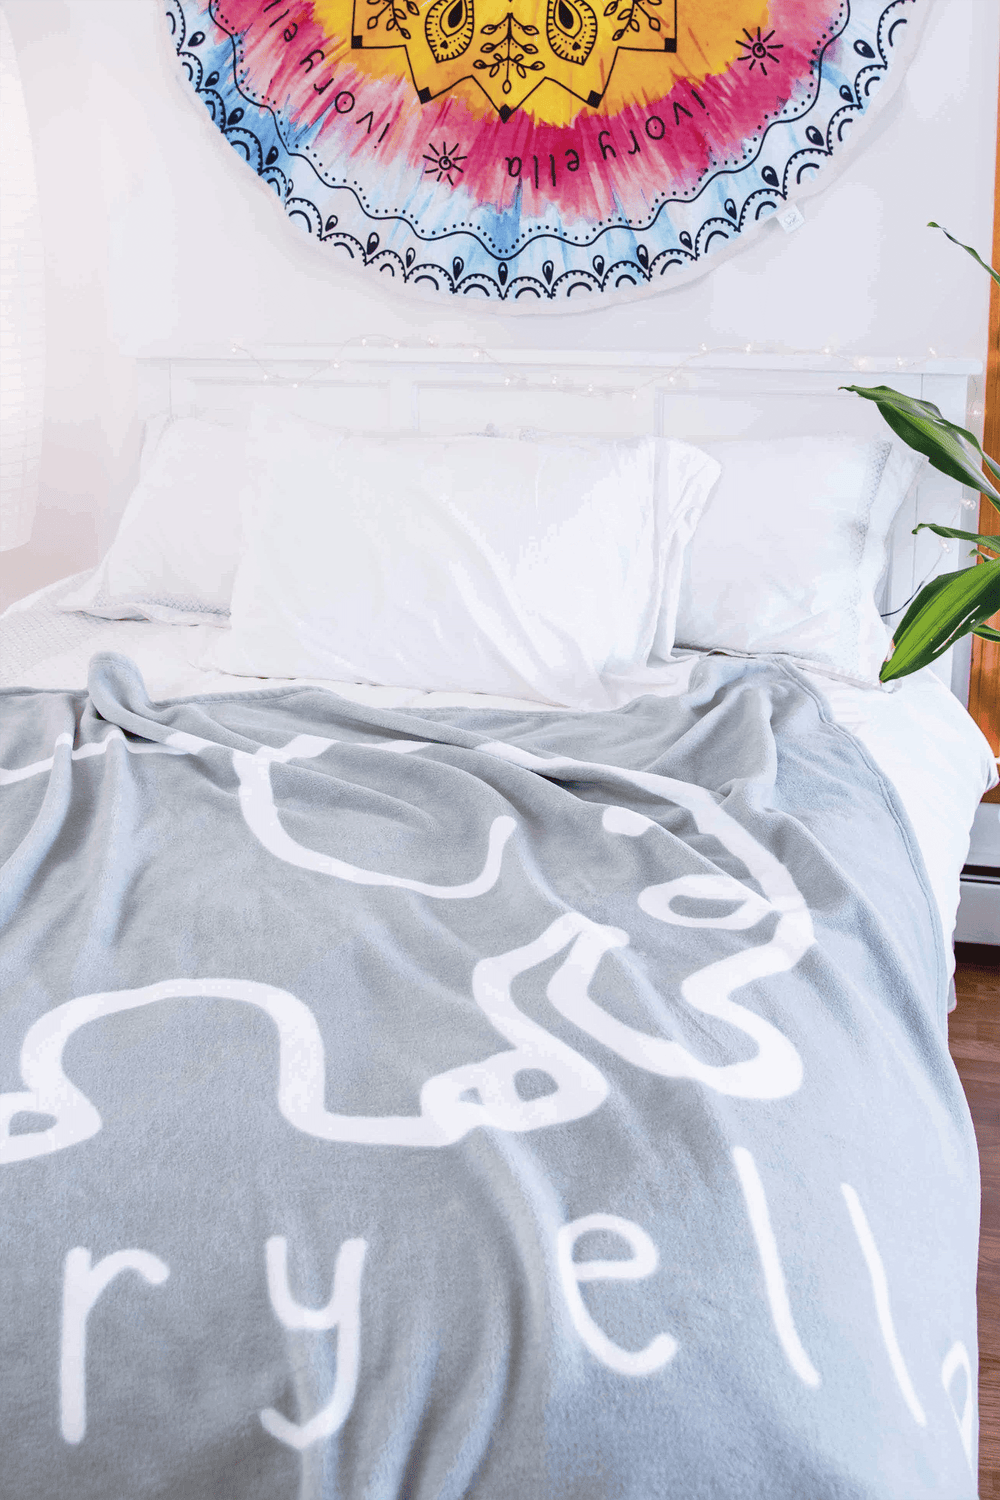 Elephant Blanket from Ivory Ella laid out on a bed in a girl's room